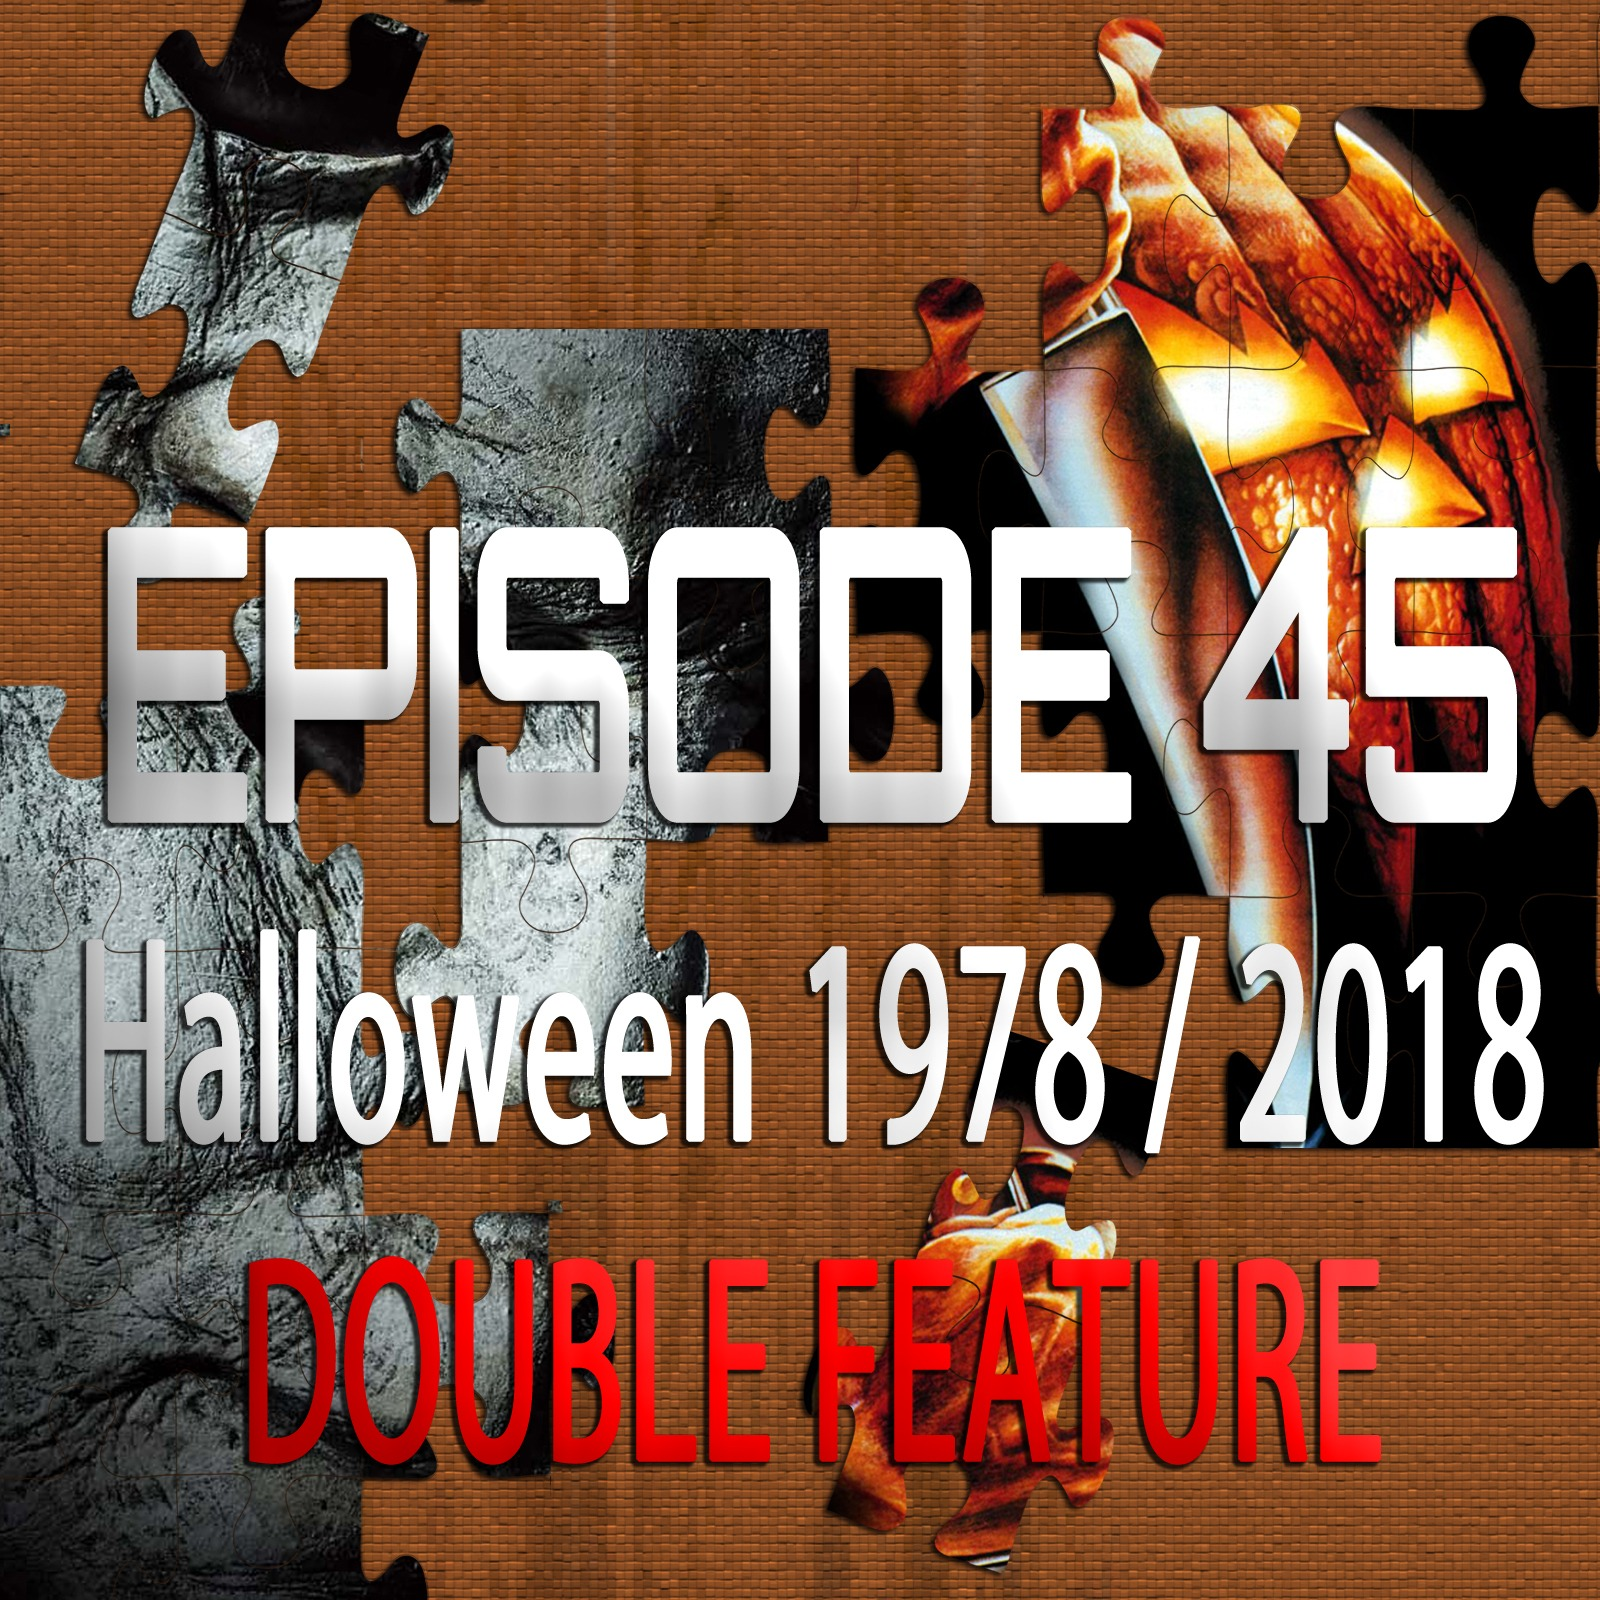 Halloween Double Feature (Featuring Chad Clinton Freeman)